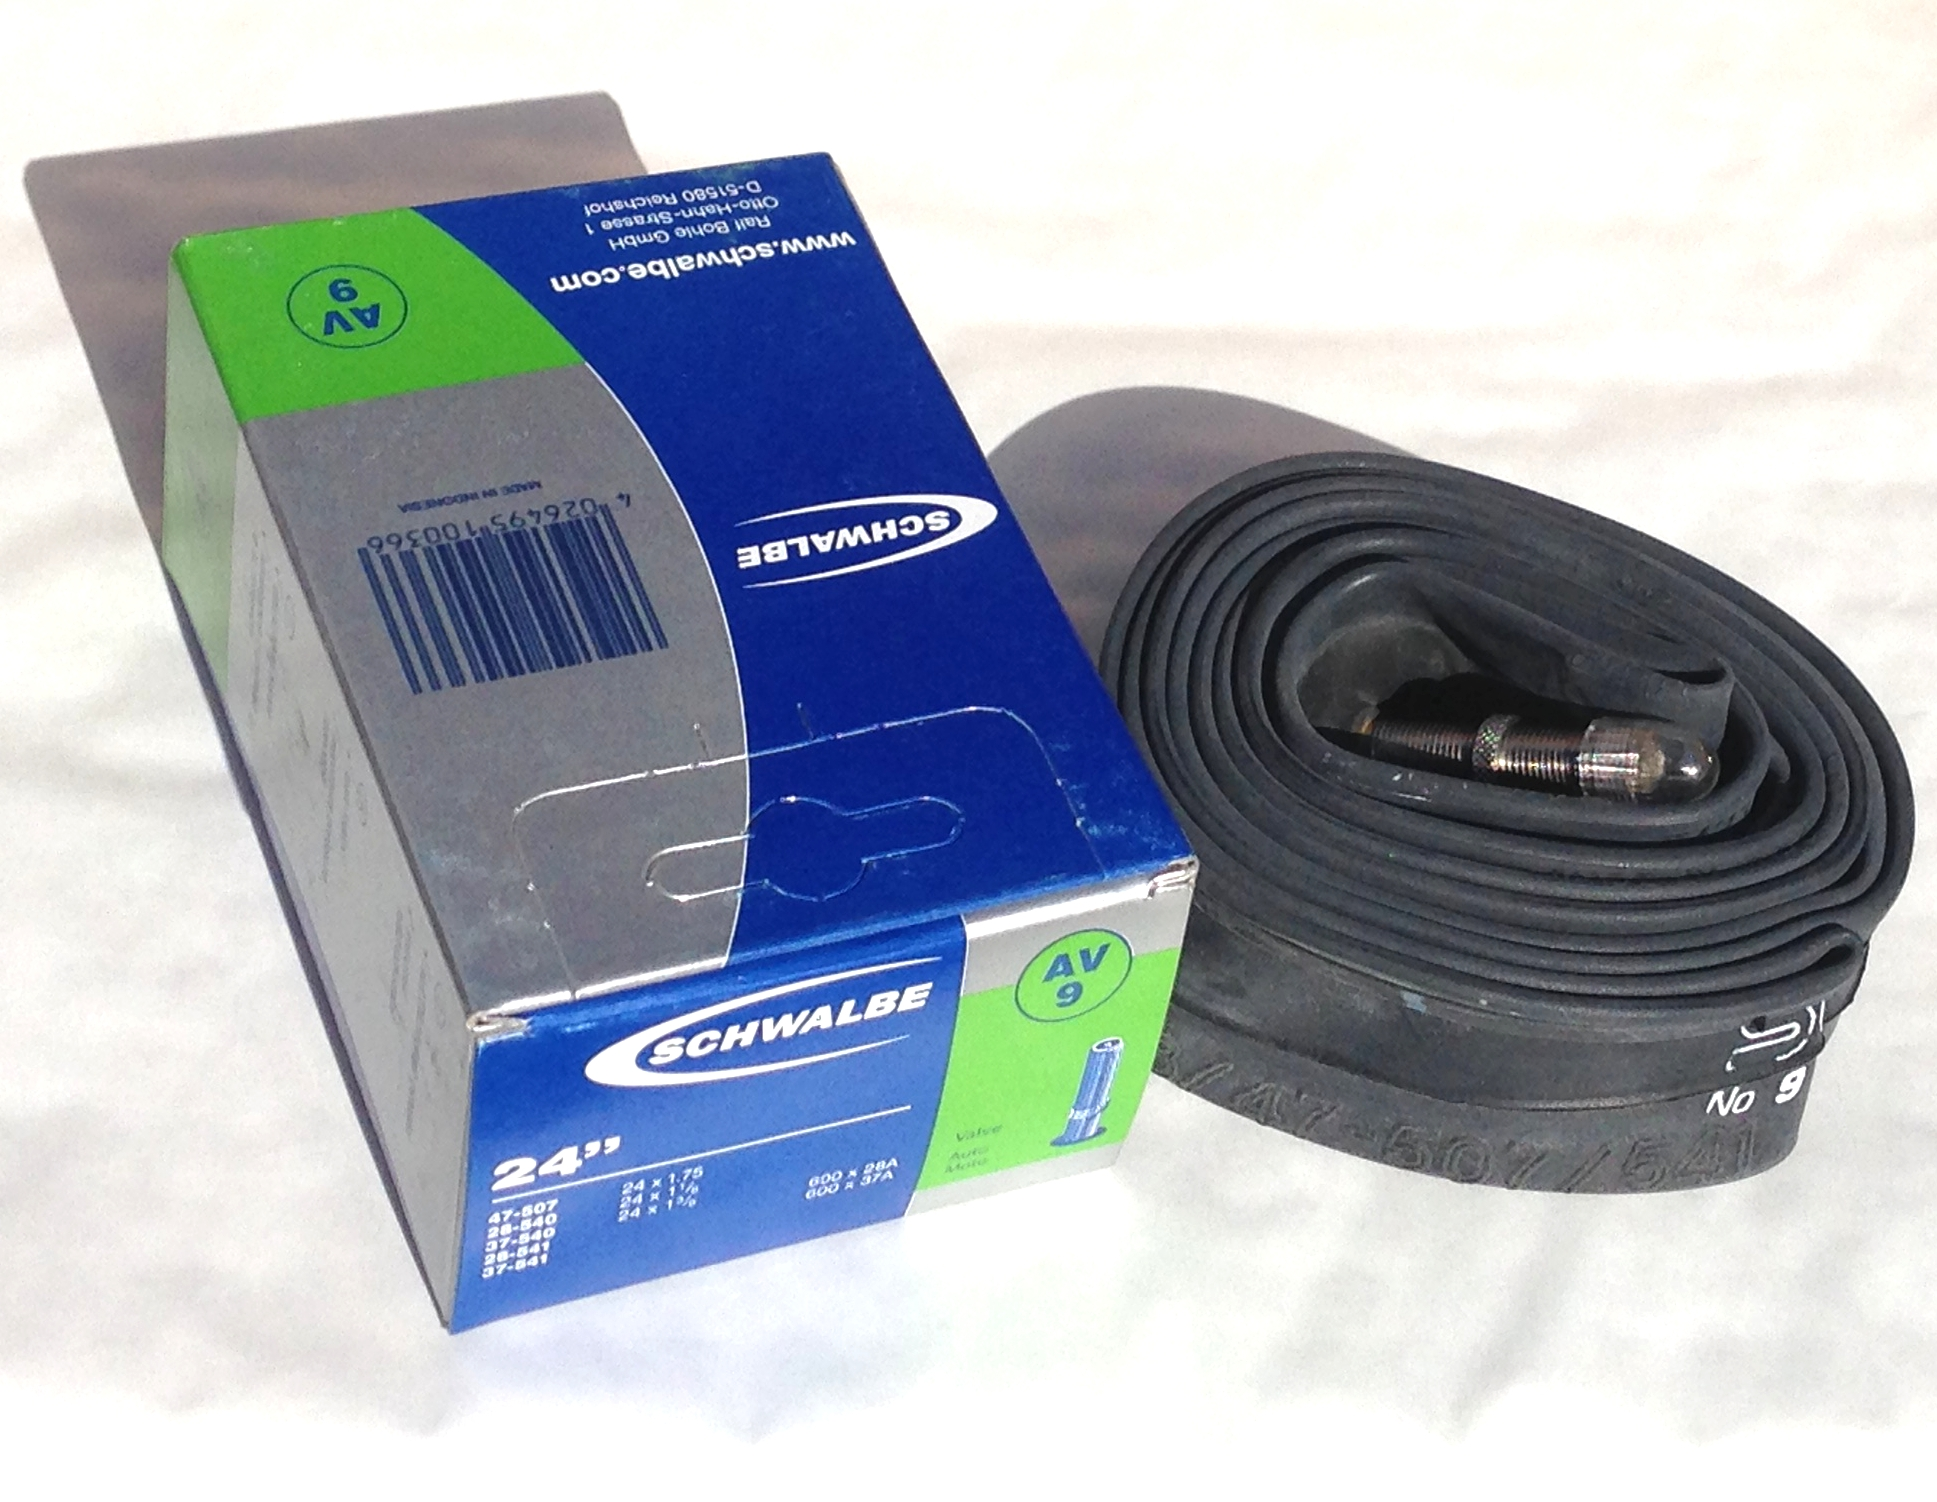 24 Inch Inner Bicycle Tube Rubber Tubes 24 x 1-3//8 Mountain Bike Schrader